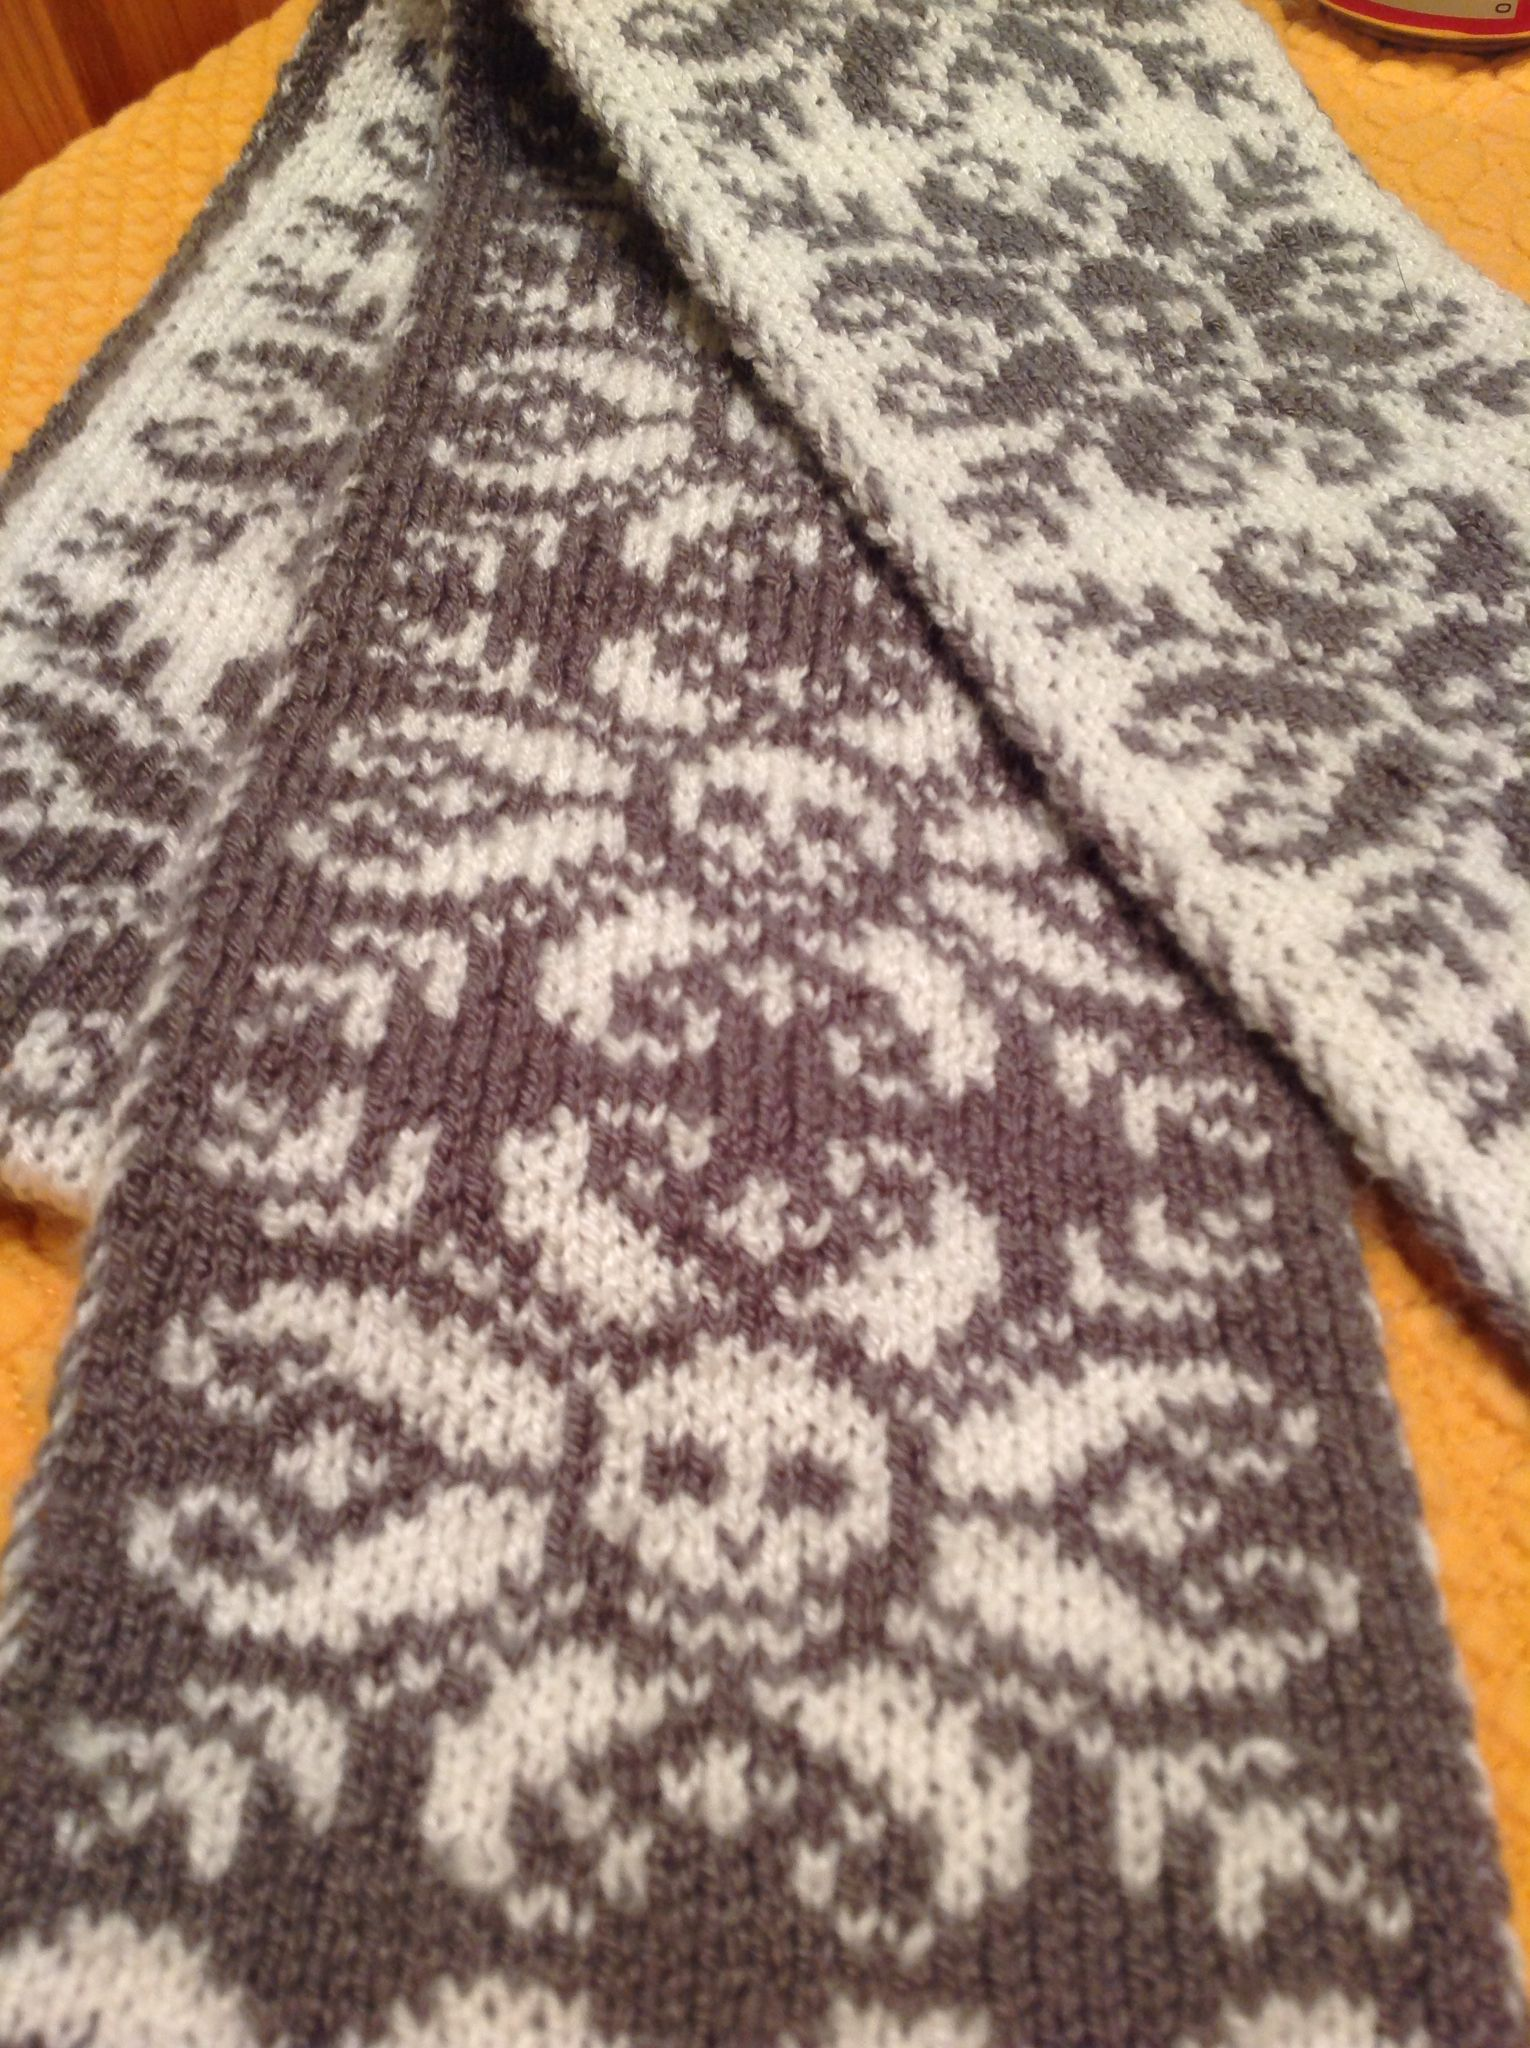 Double sided knitted skull scarf in charcoal and cream pattern is double sided knitted skull scarf in charcoal and cream pattern is from bankloansurffo Image collections